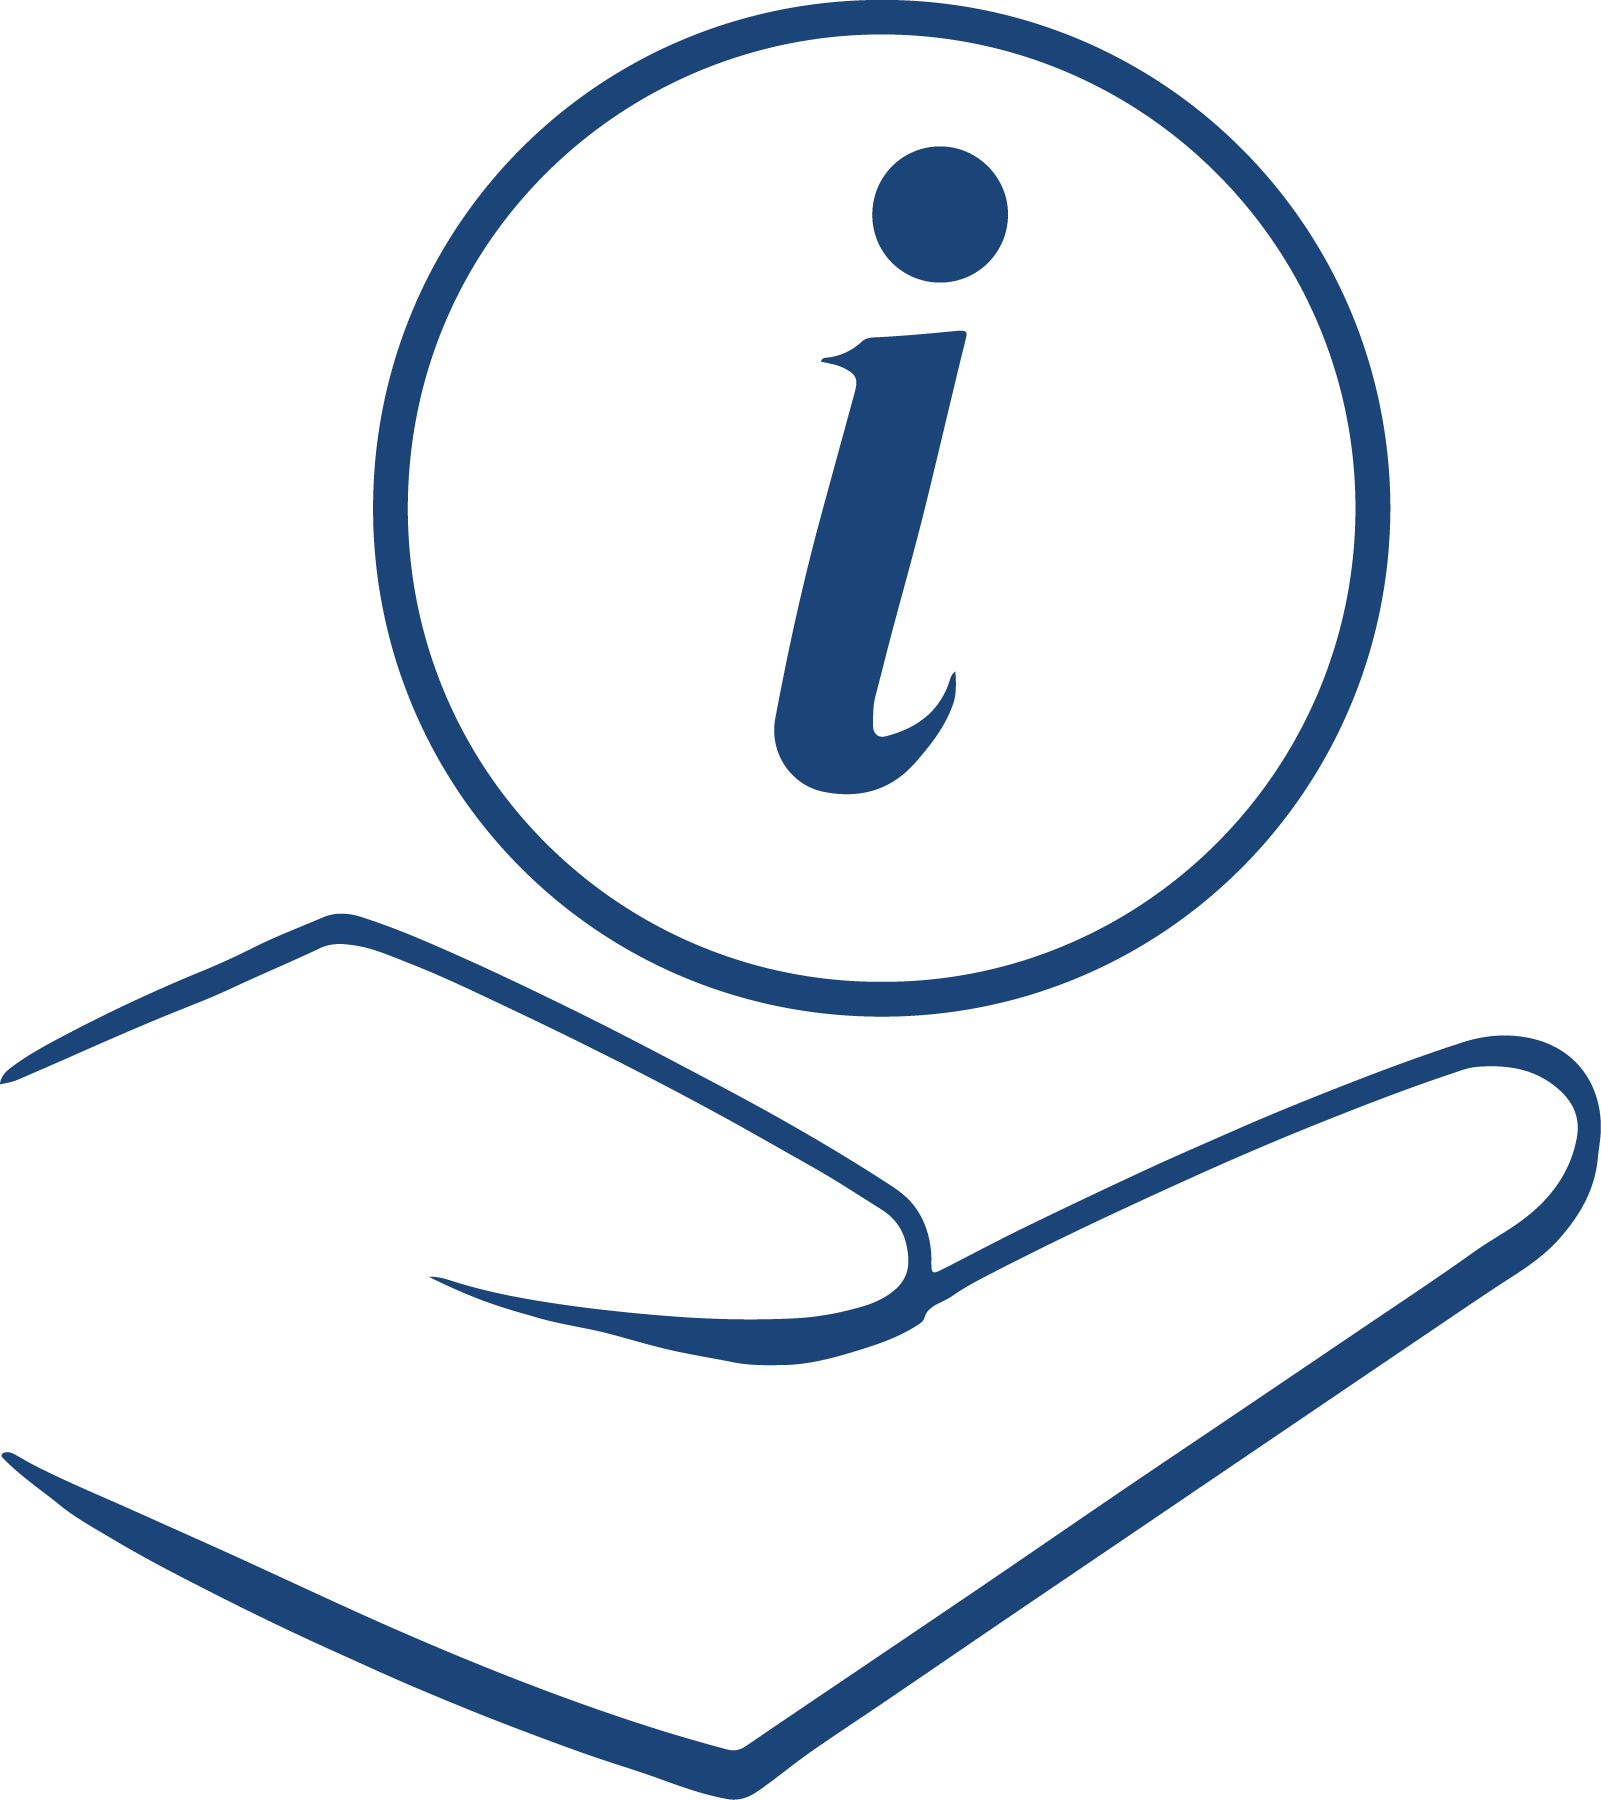 Right to be informed icon